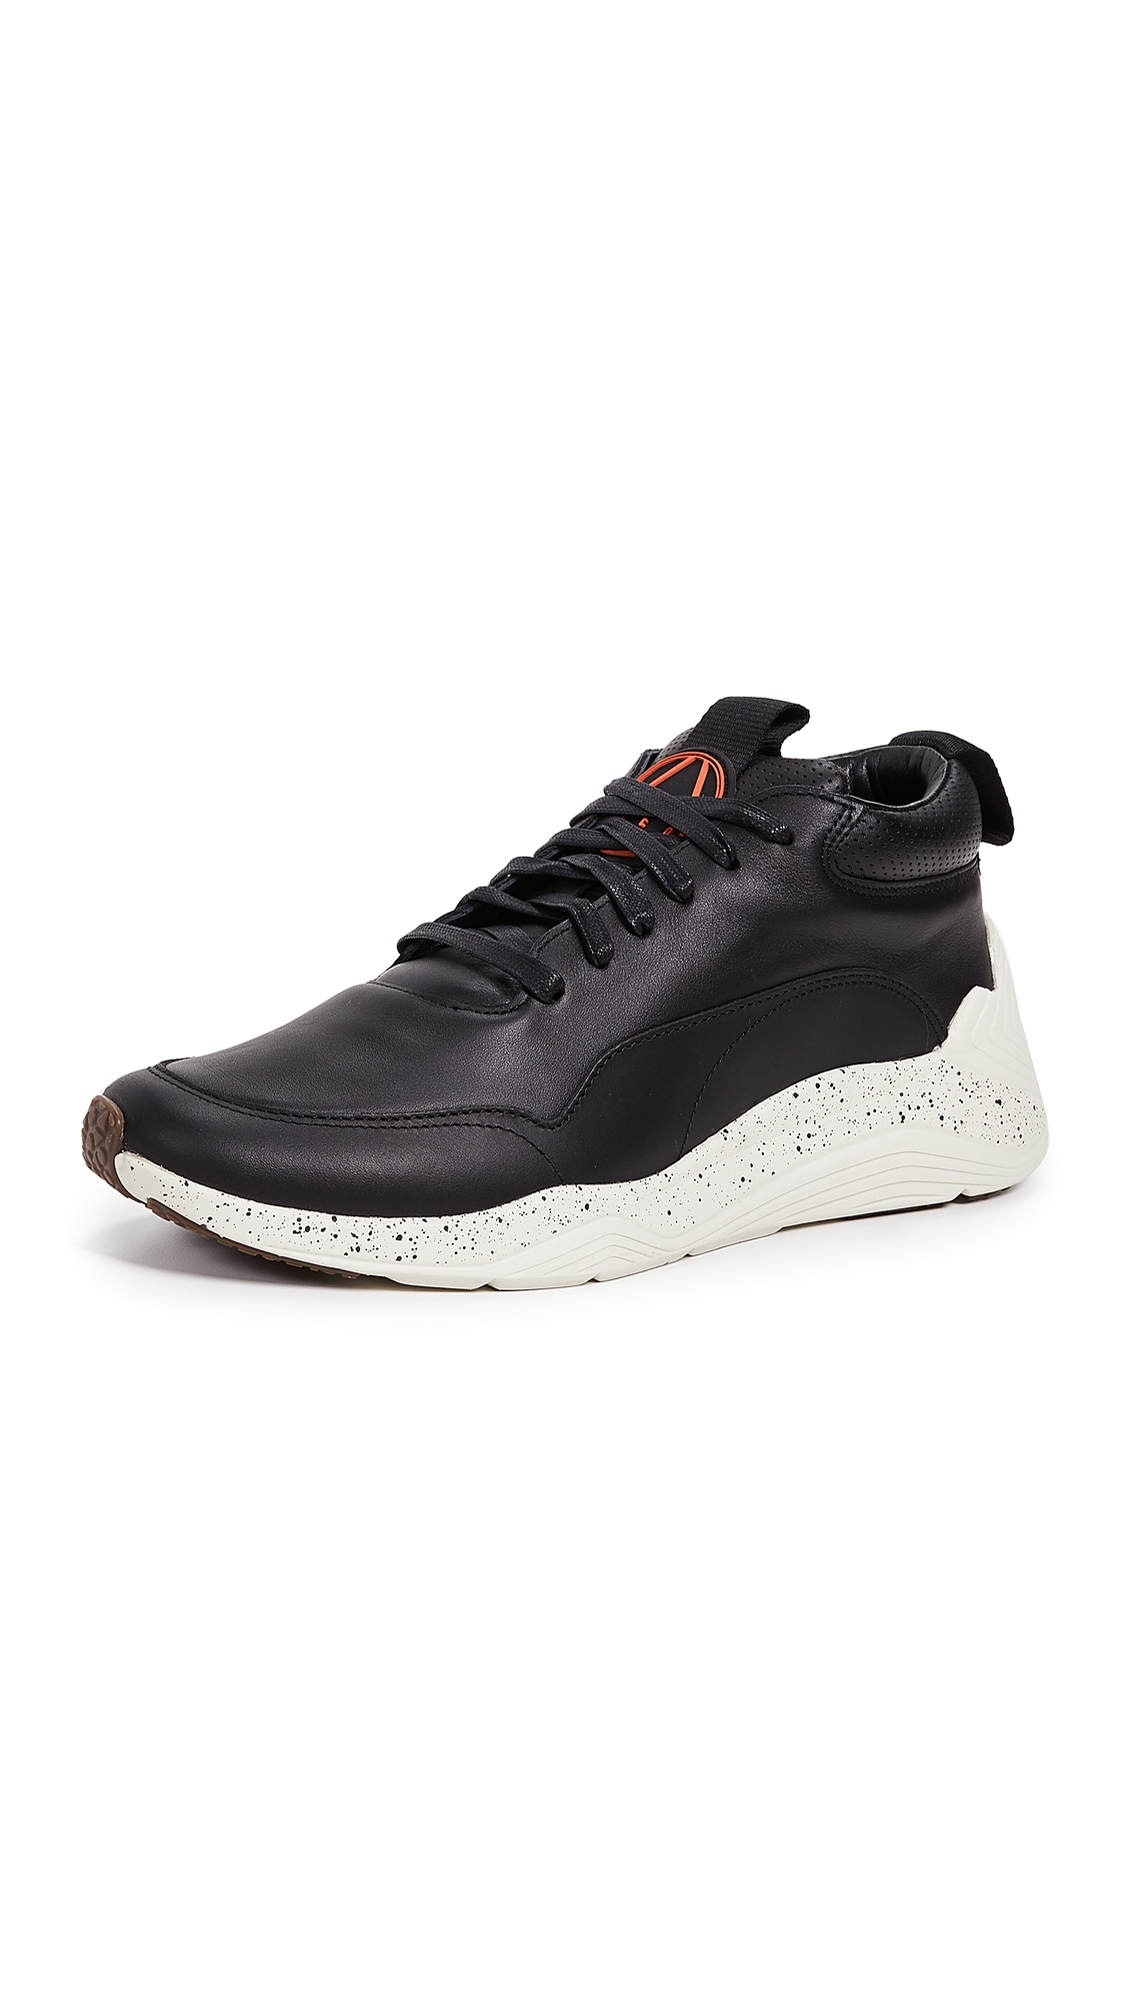 MCQ BY ALEXANDER MCQUEEN GISHIKI HYBRID LOW TOP SNEAKERS